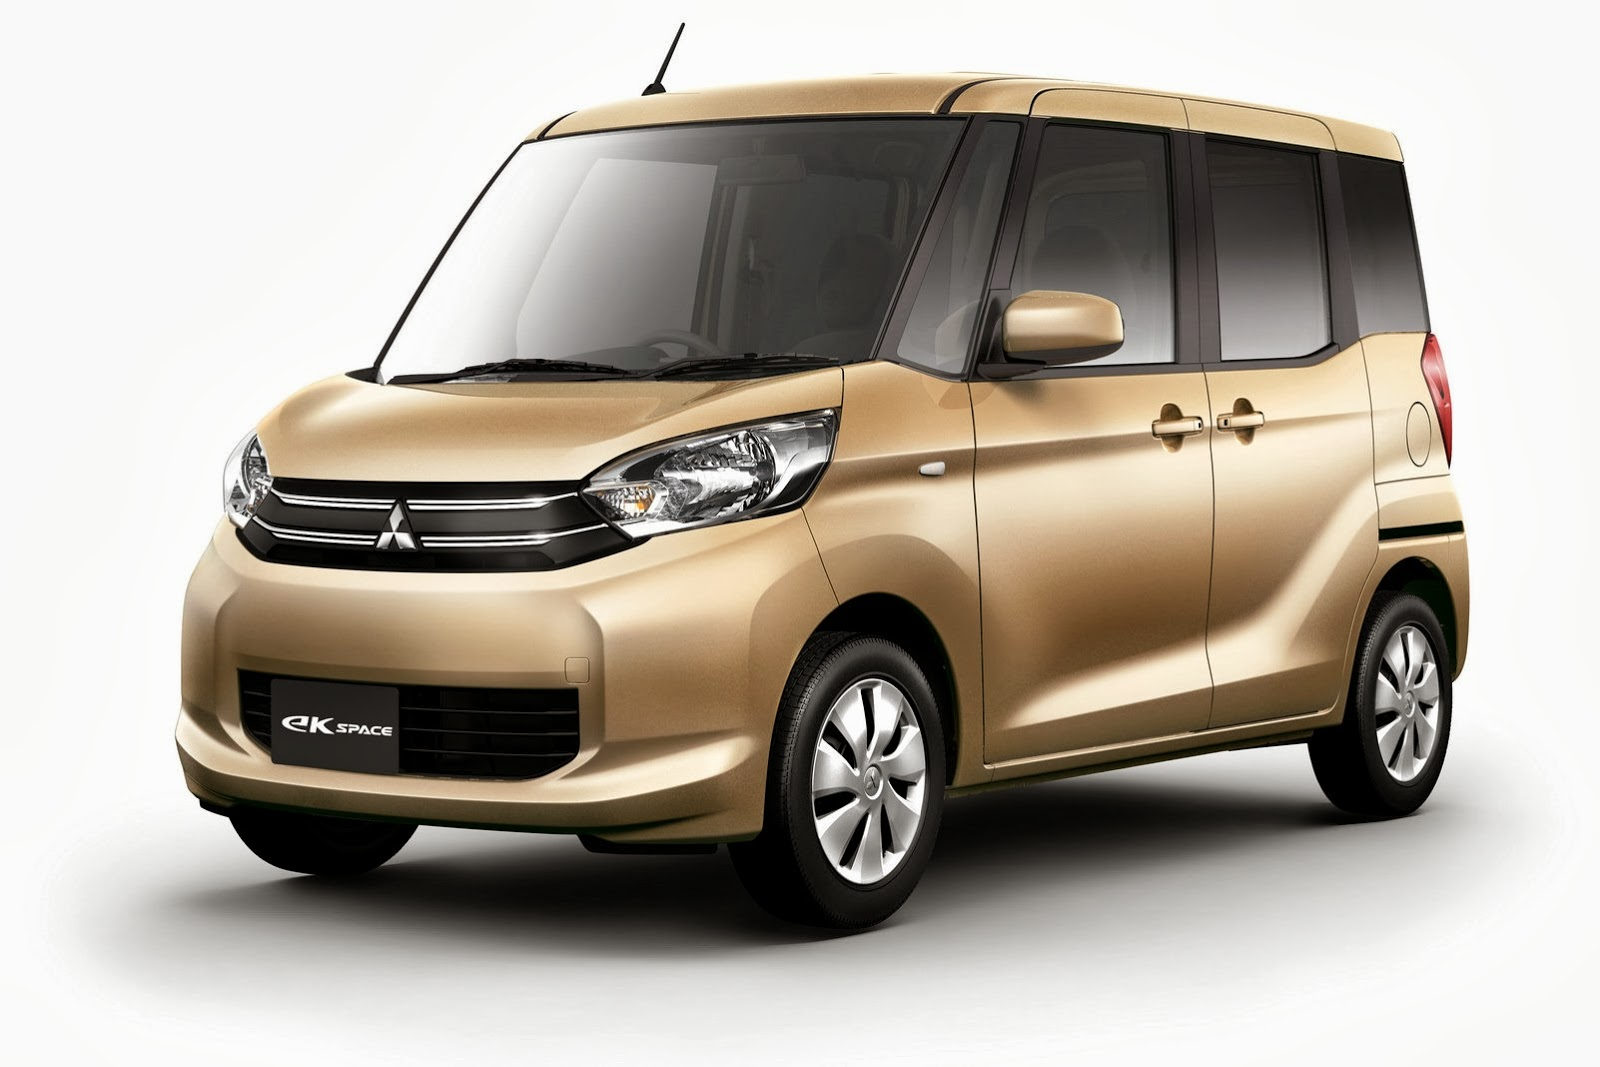 2014 Mitsubishi Ek Space Custom It S Cool To Be Square